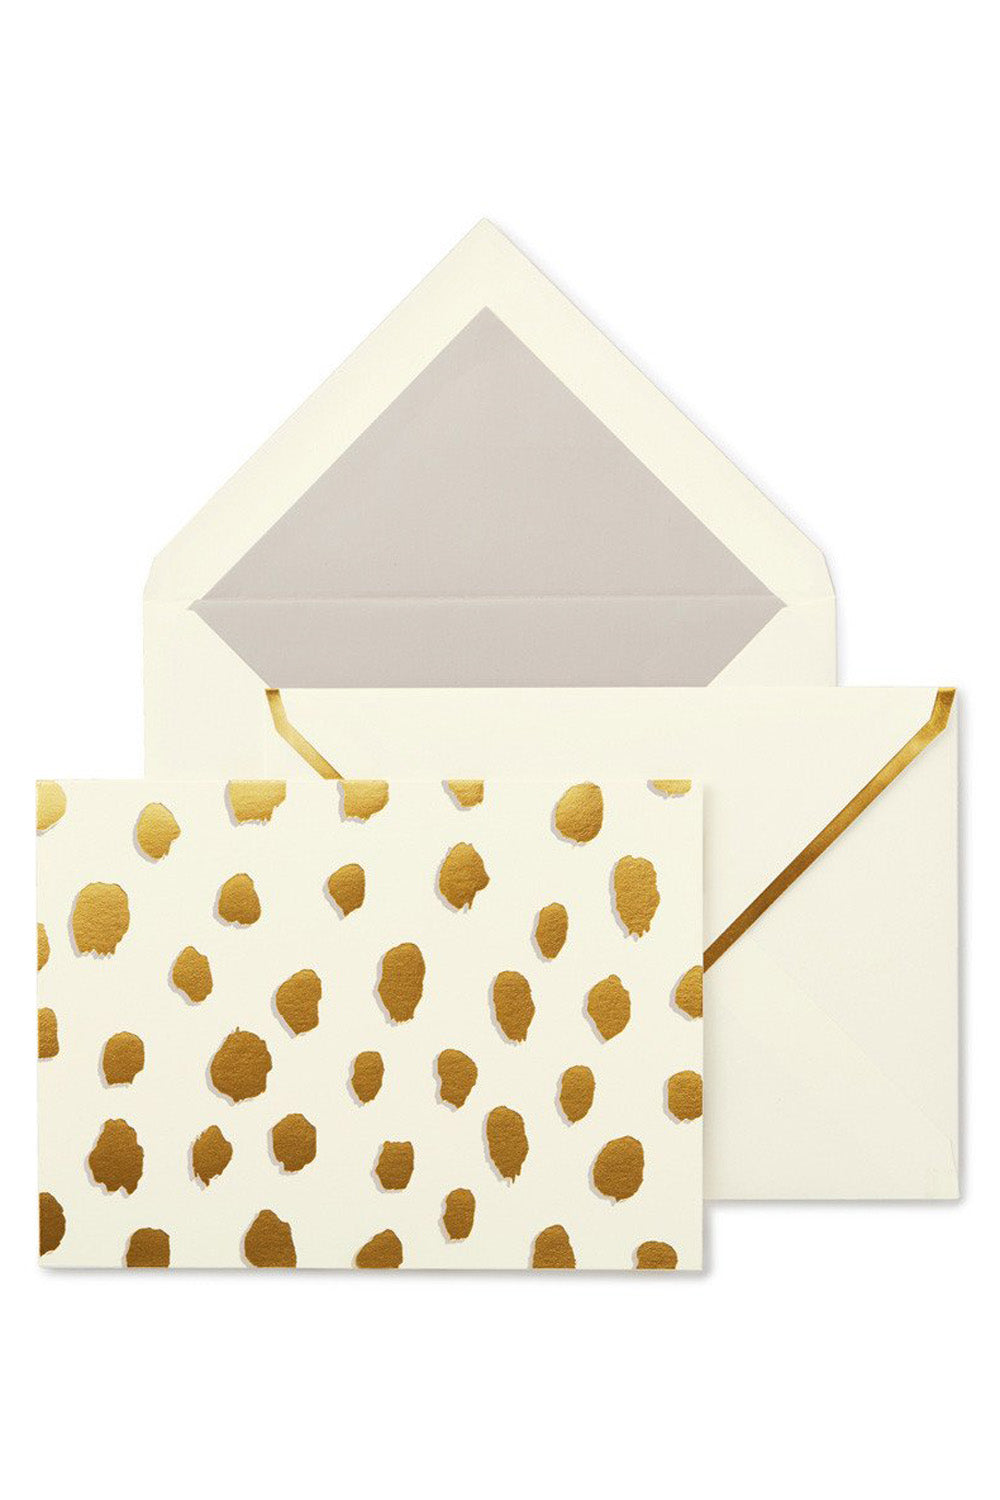 Preppy Kate Spade Notecard Set - Gold Flamingo Dot